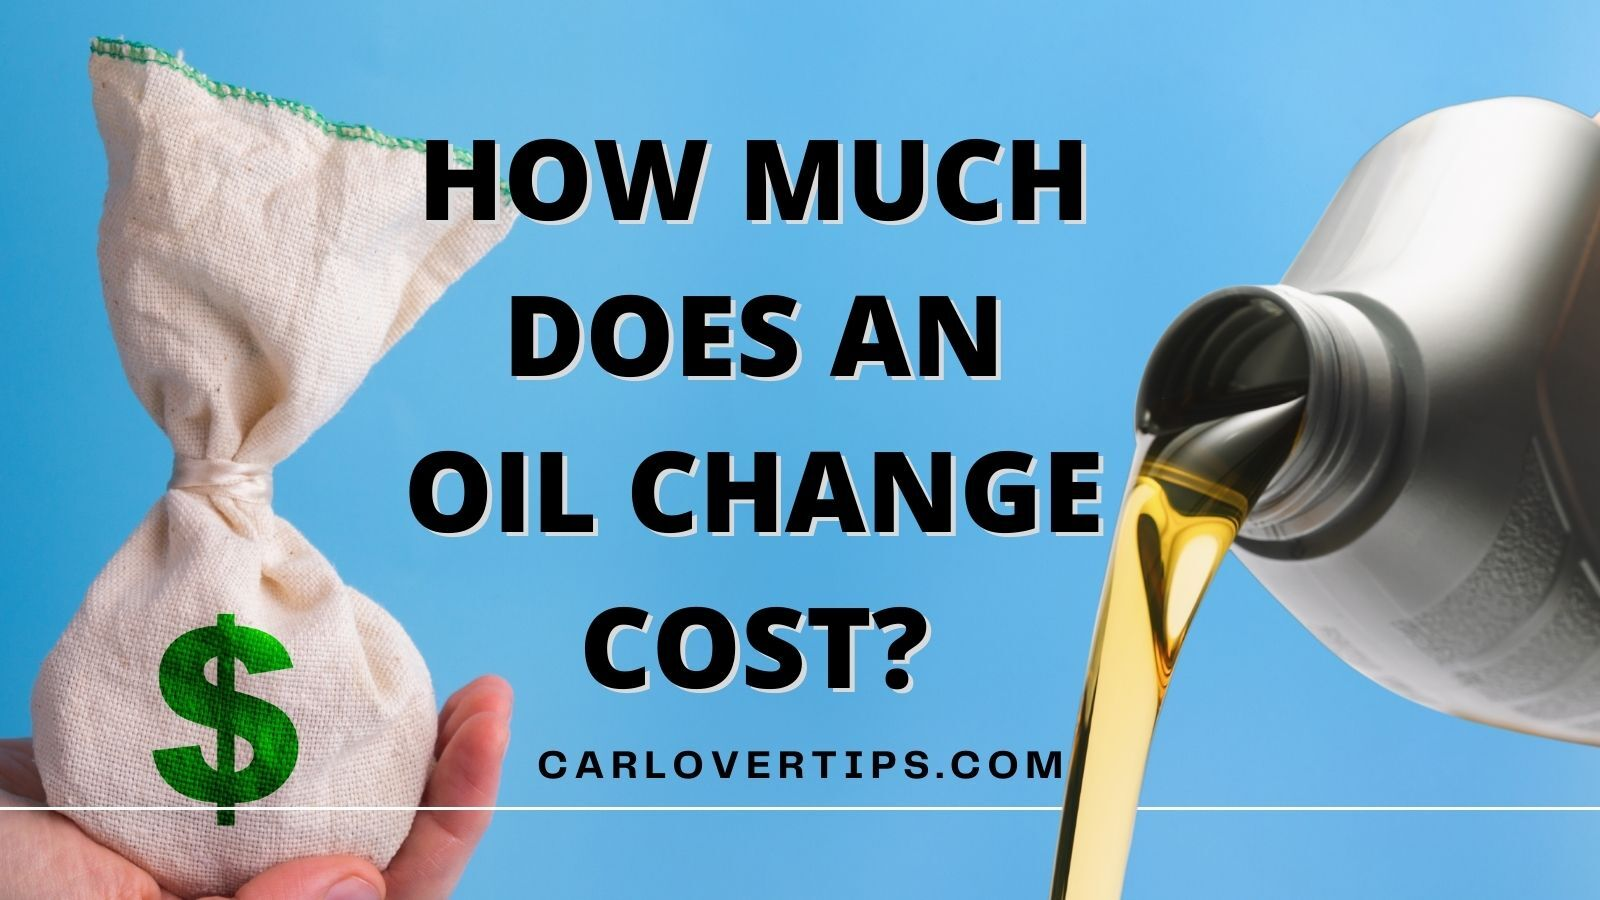 How much does an oil change cost Car Lover Tips